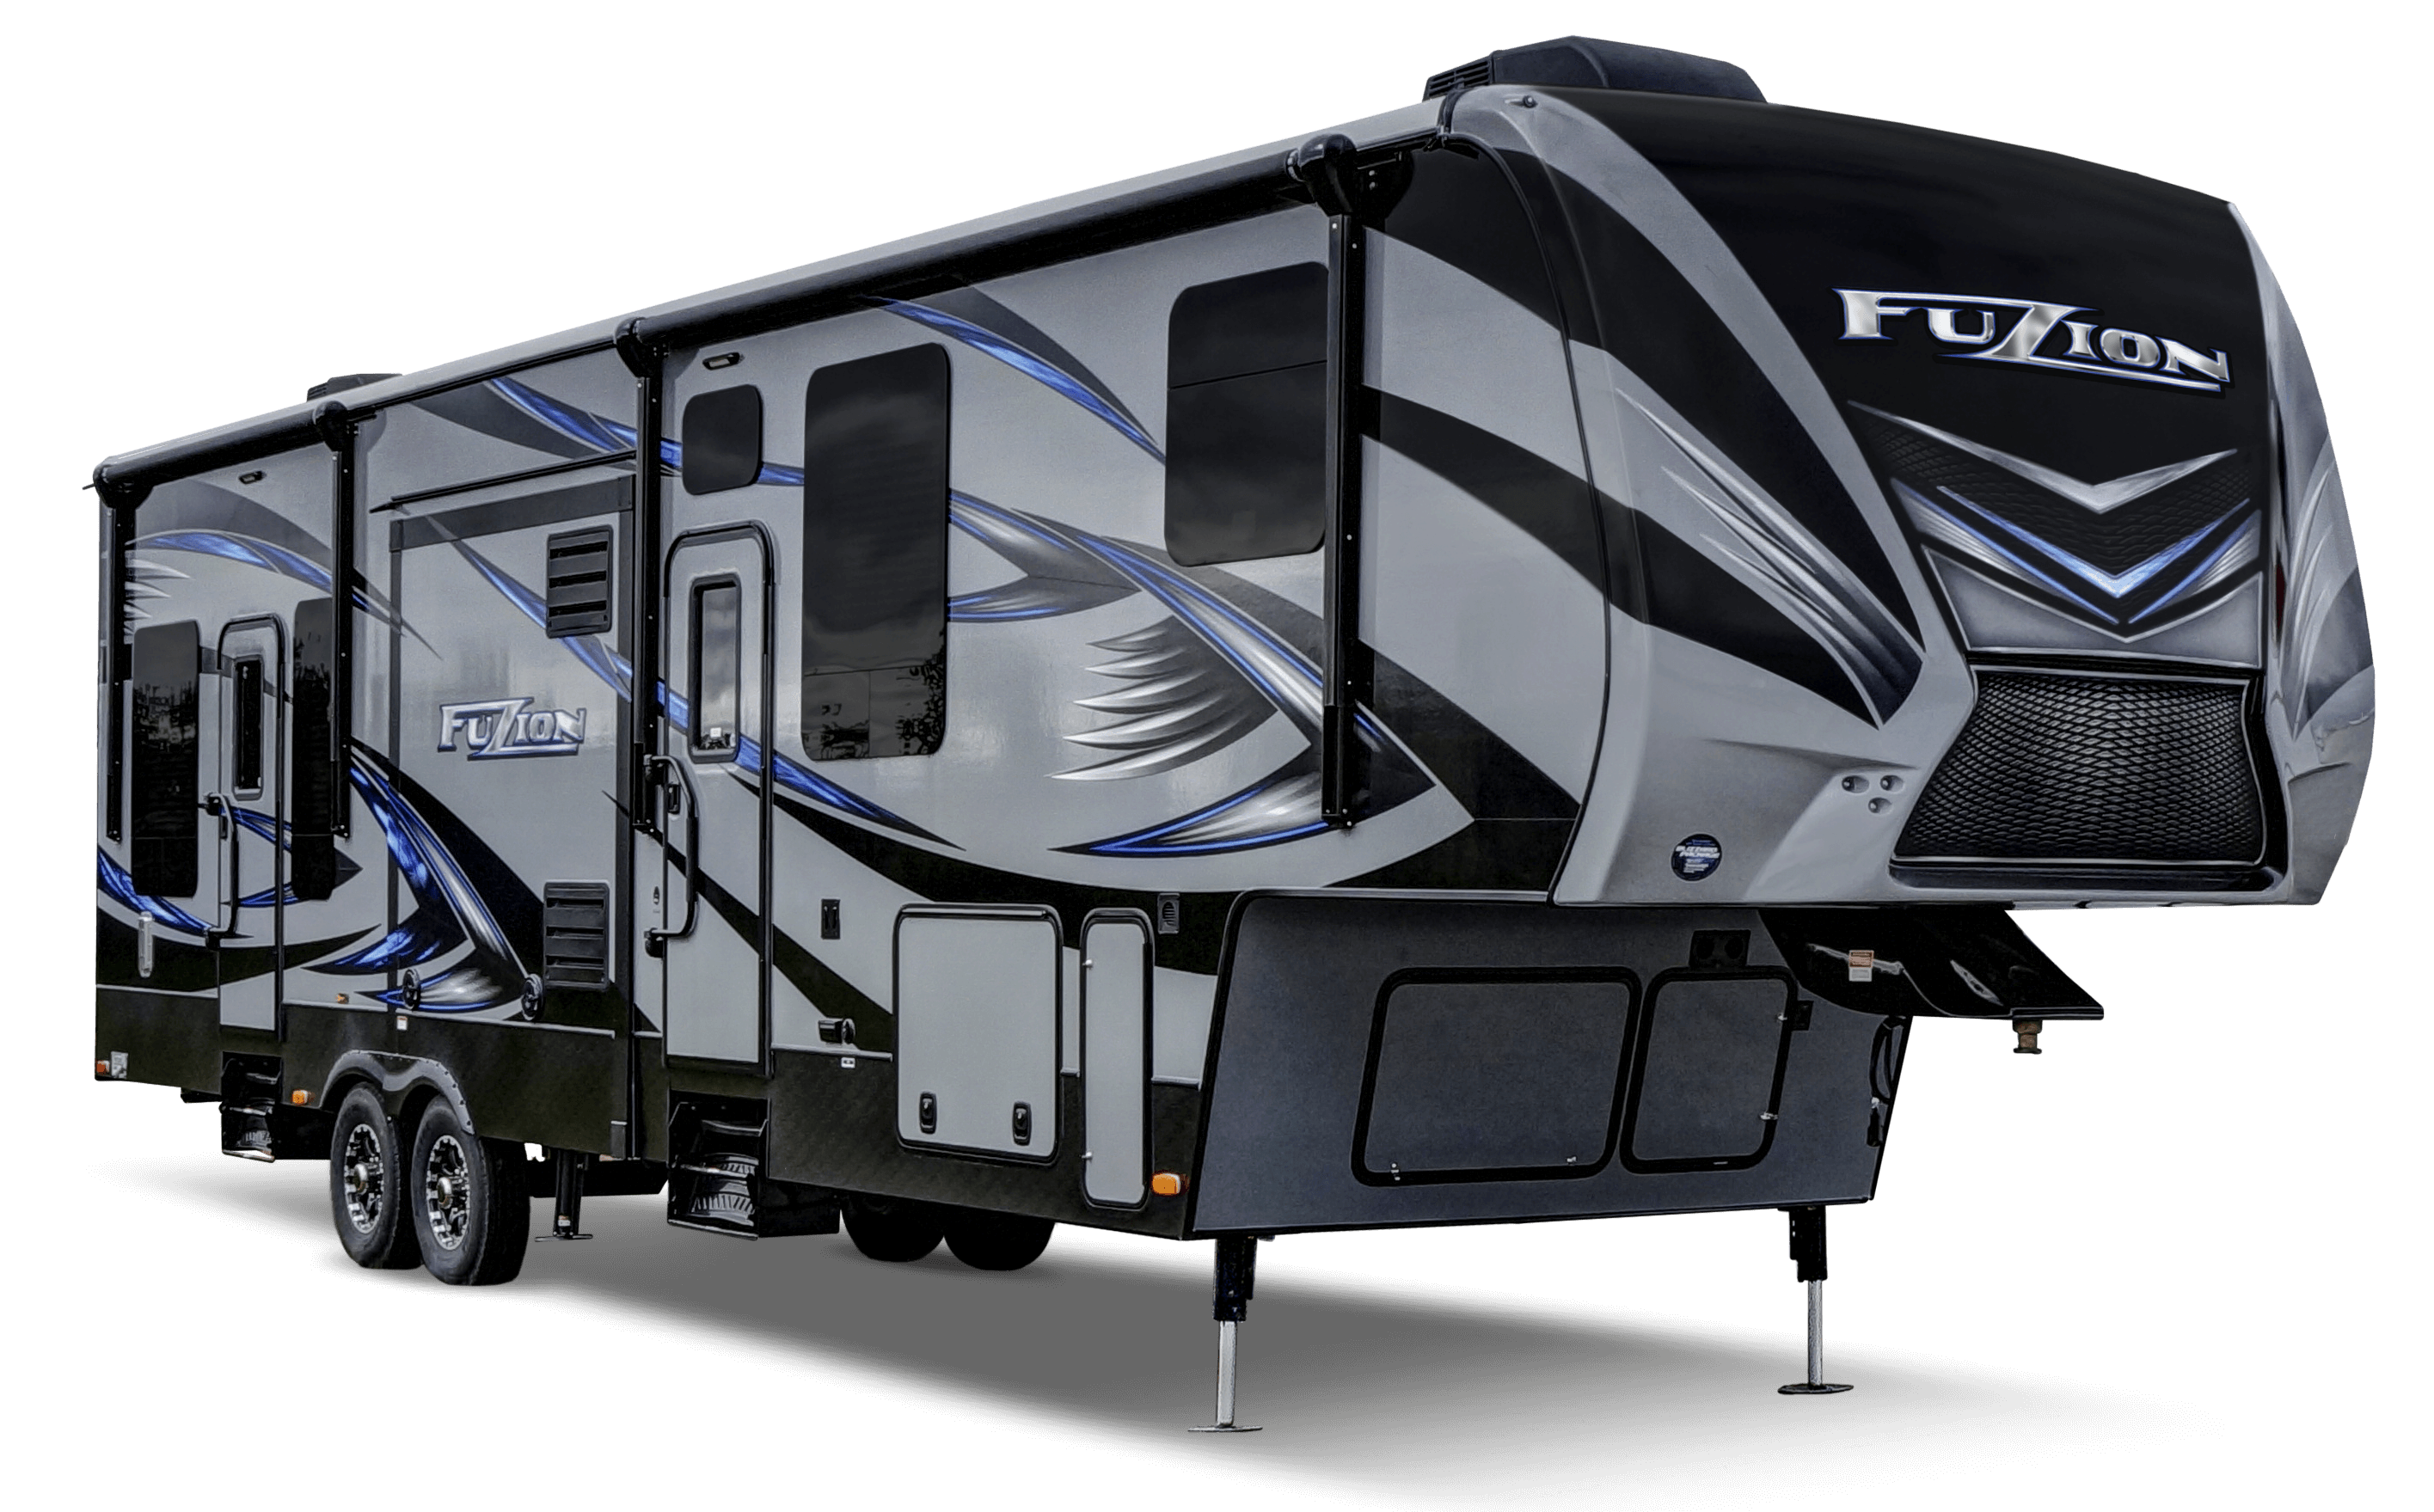 Keystone toy hauler fifth wheel for Motor home toy haulers